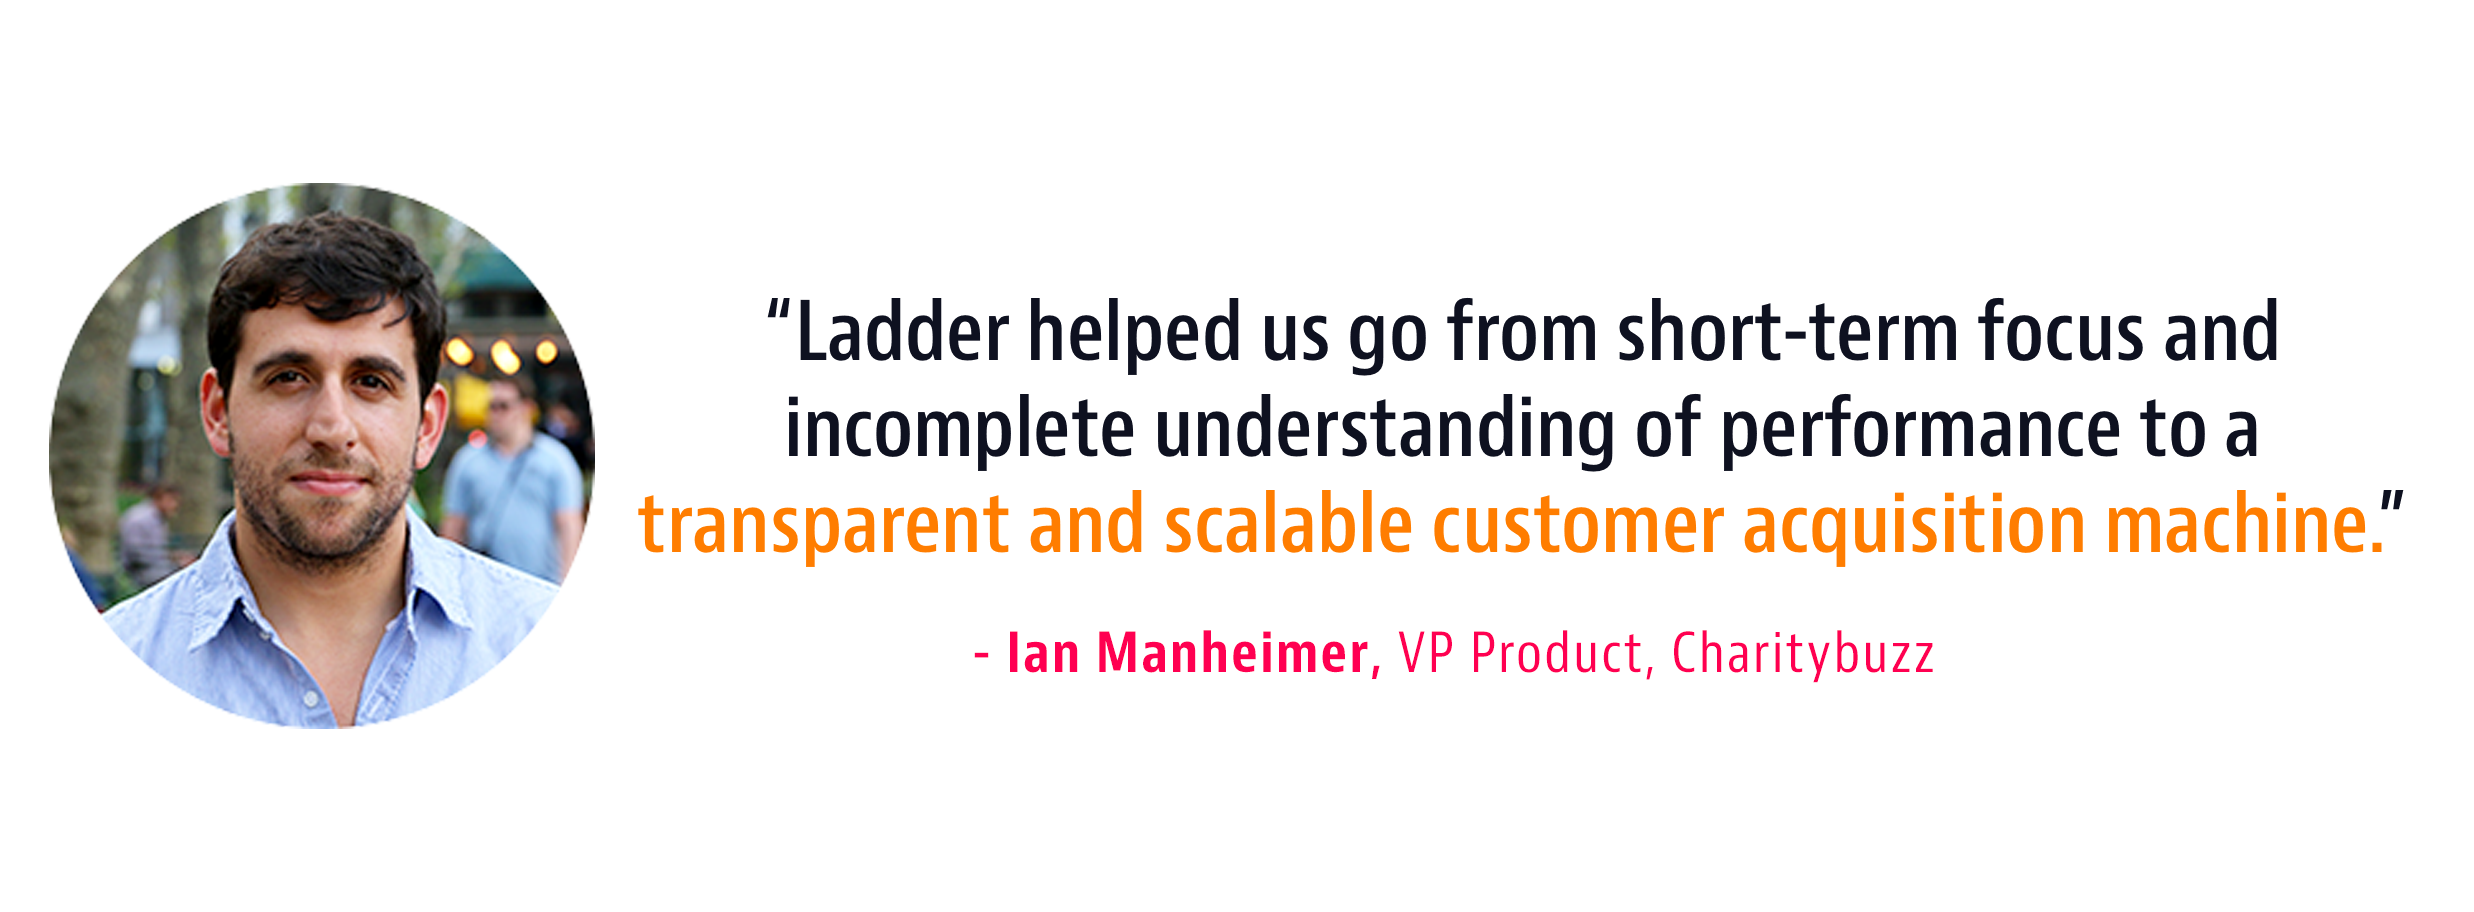 testimonial on Ladder's marketing prowess